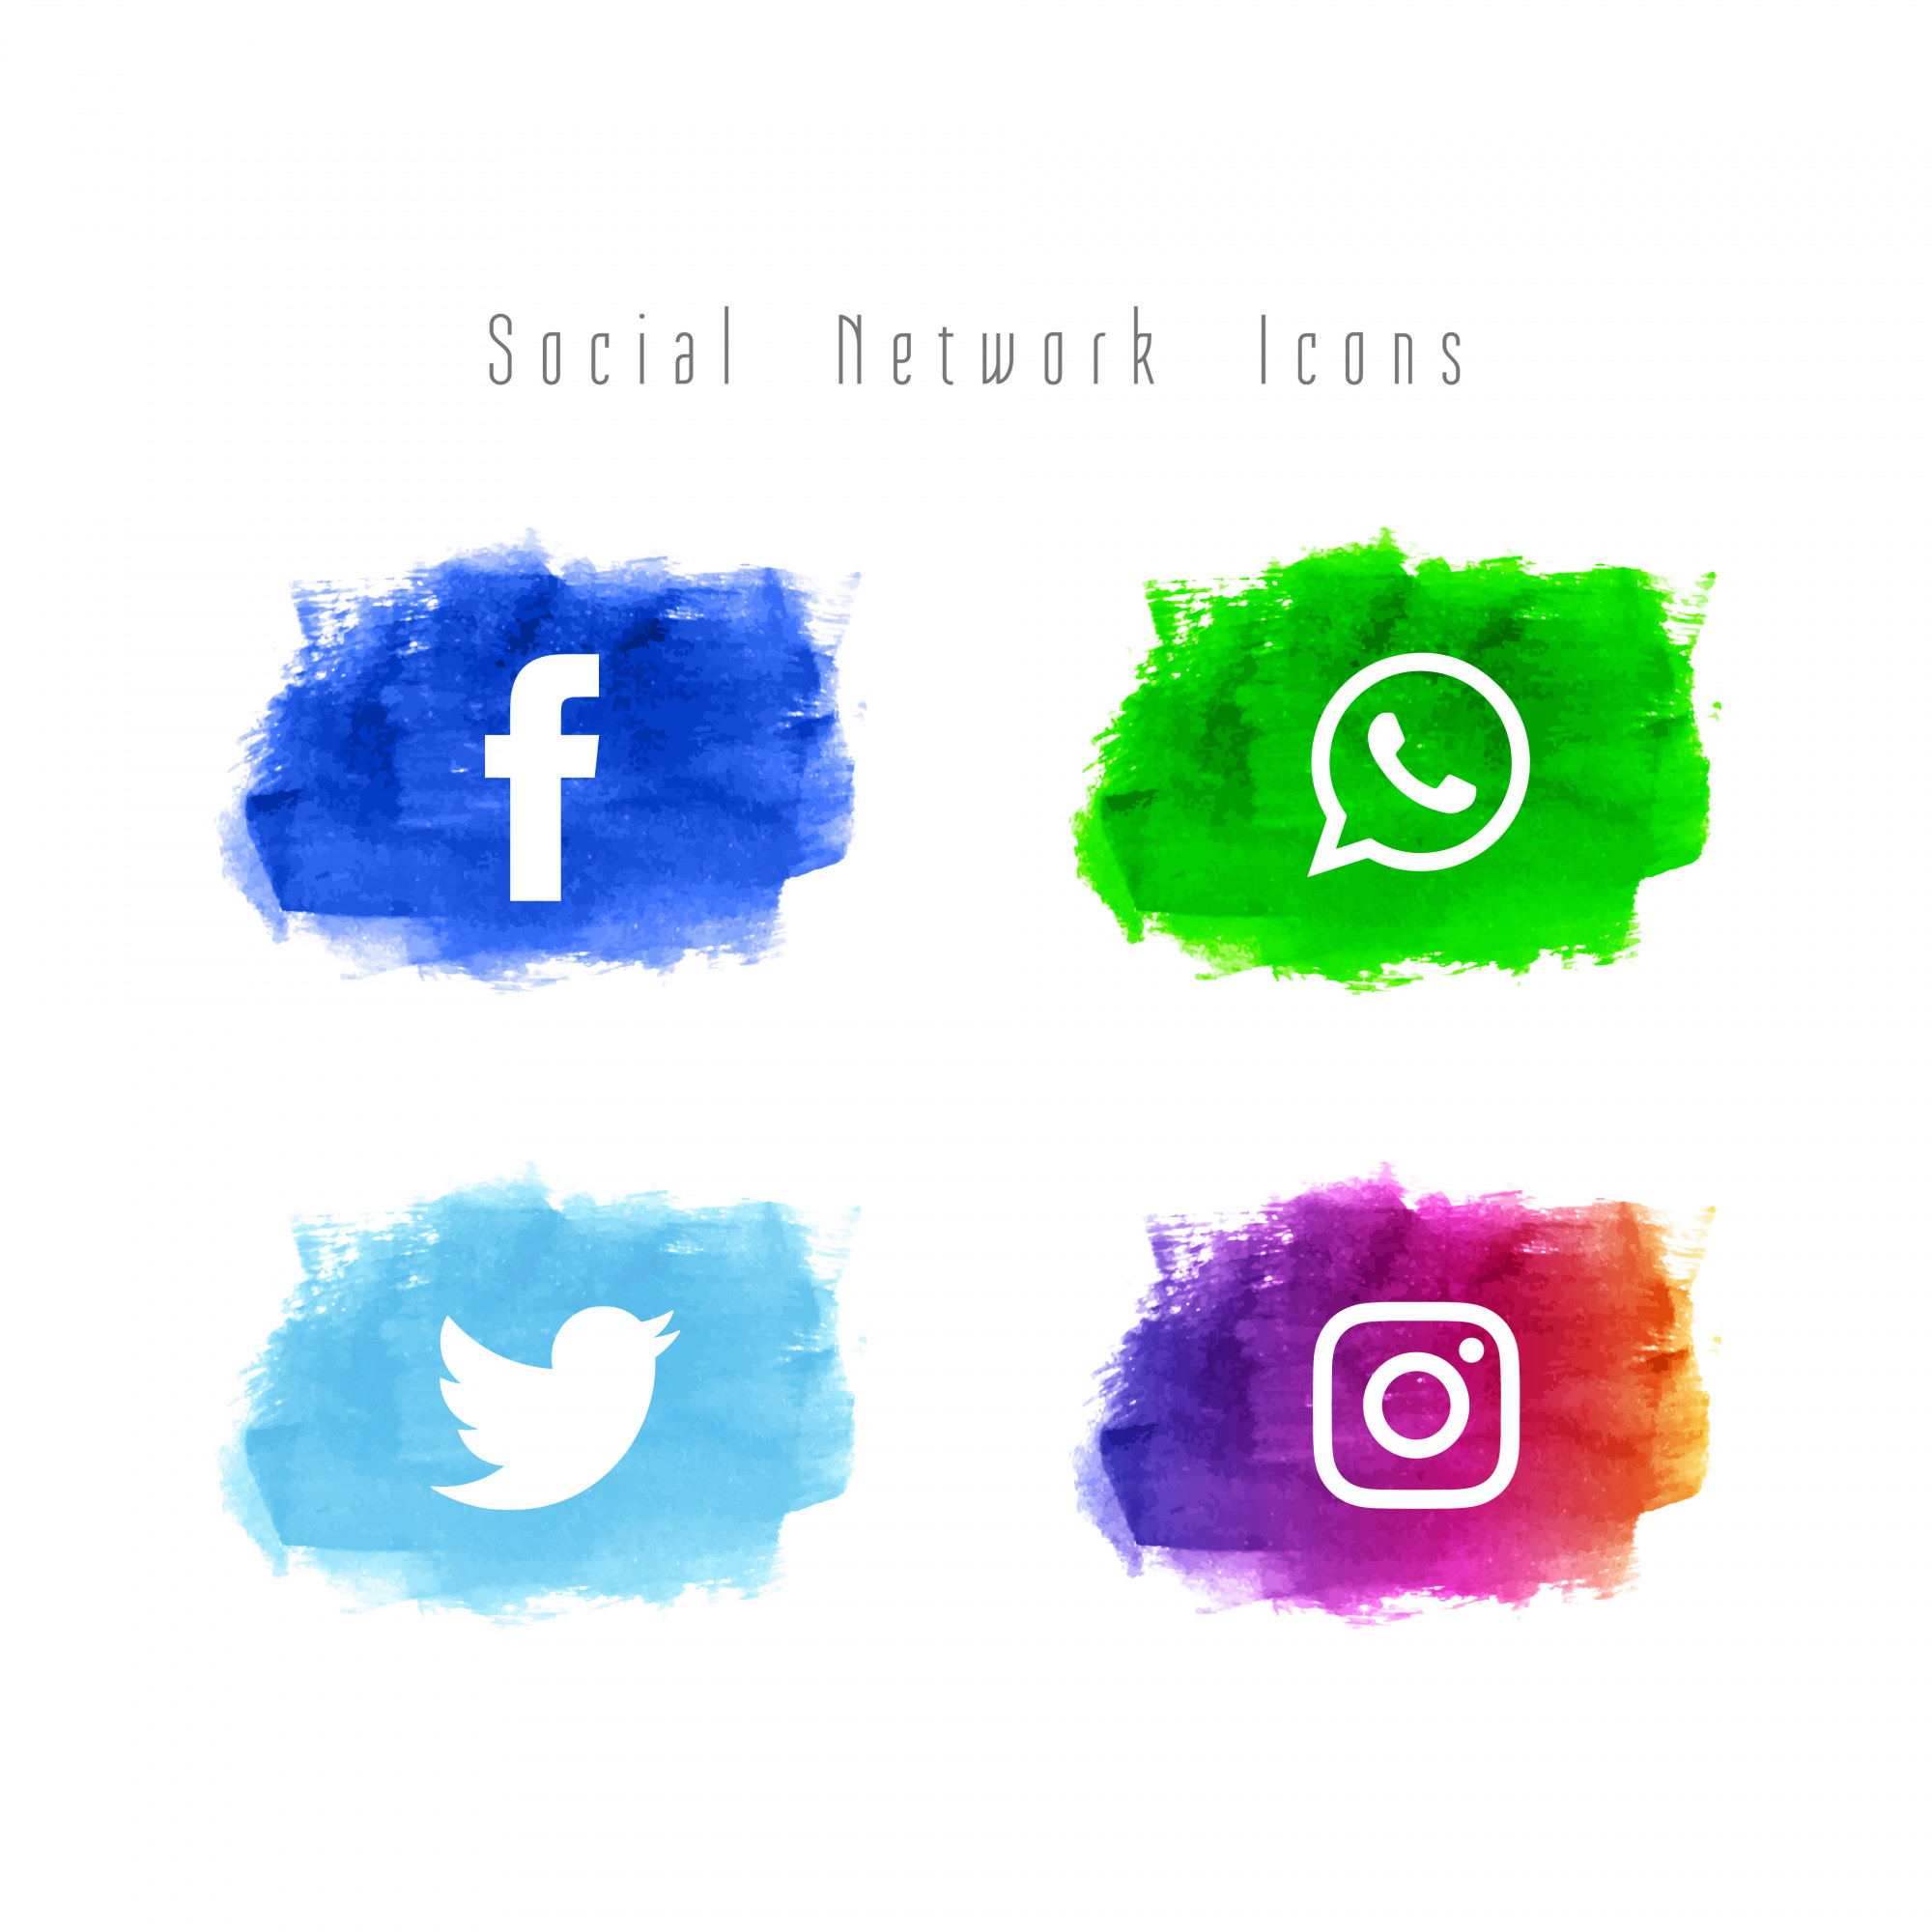 Abstract social network watercolor icon set